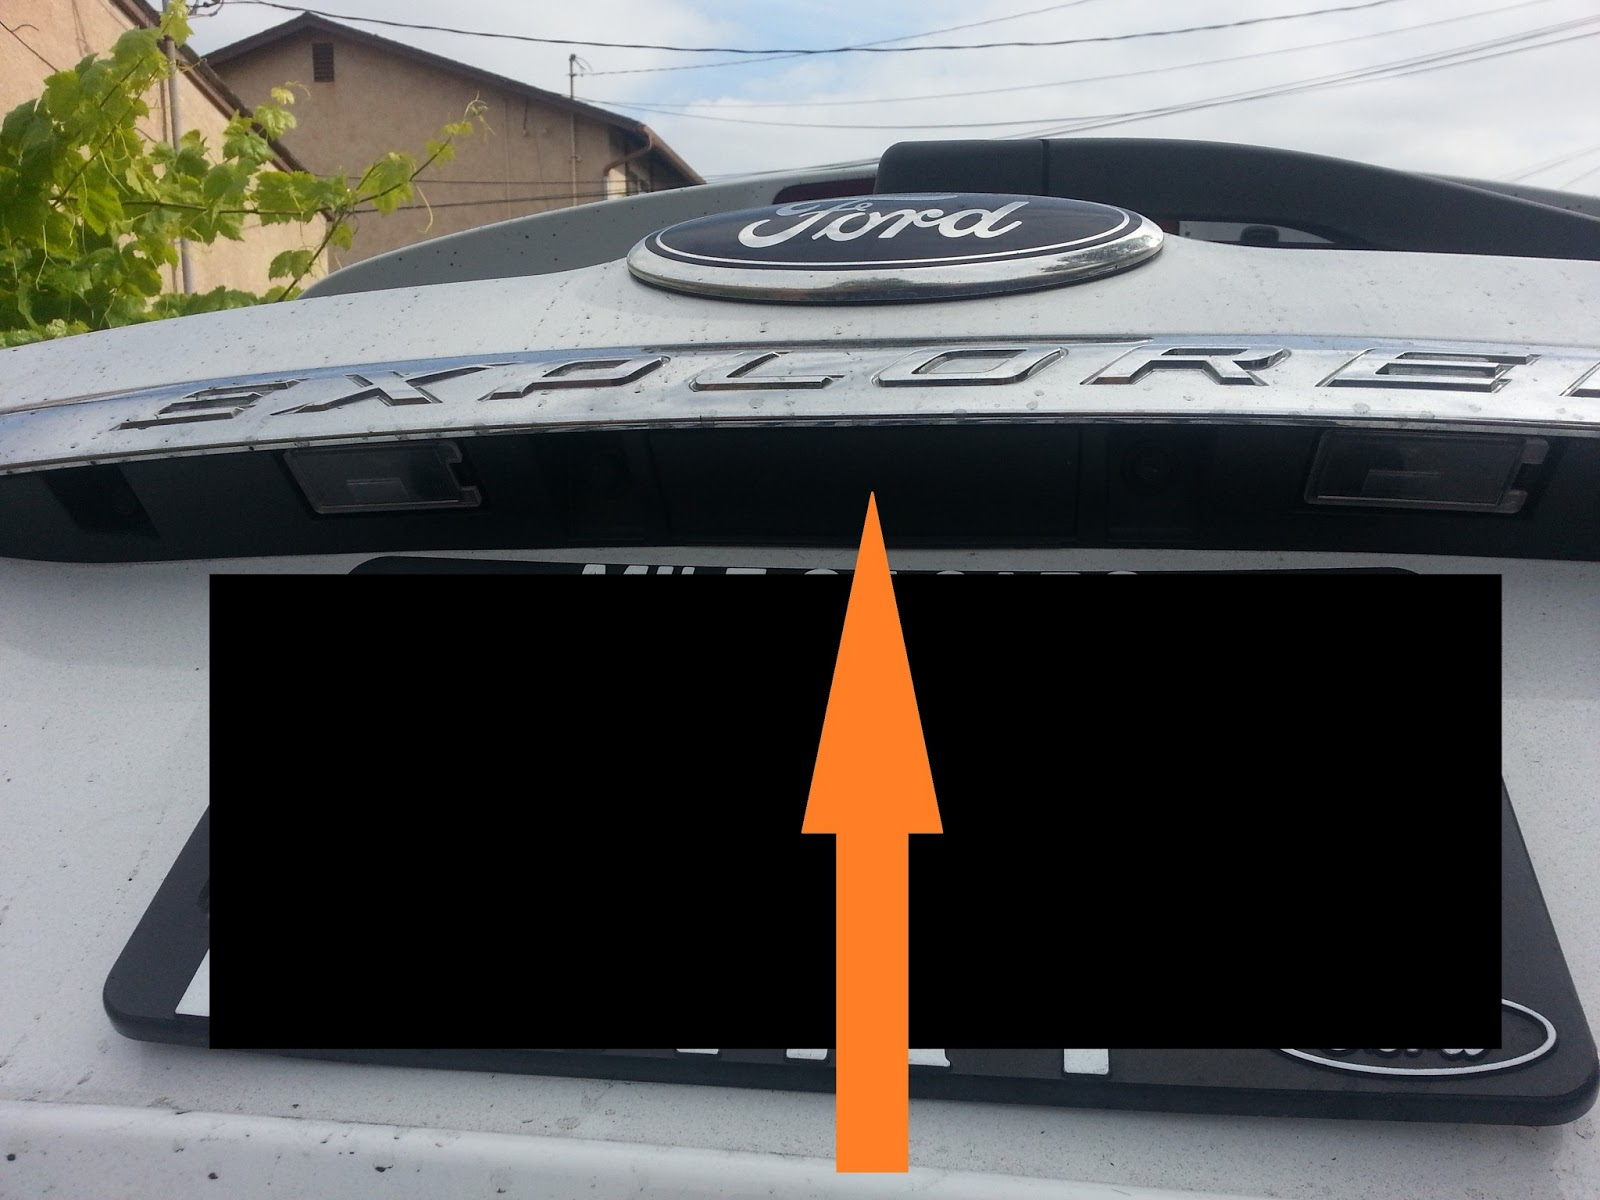 2013 Ford Explorer Diy Projects Base Backup Camera I Decided To Place The Where Original Oem Goes There Is A Plastic Cover Covering Hole Of